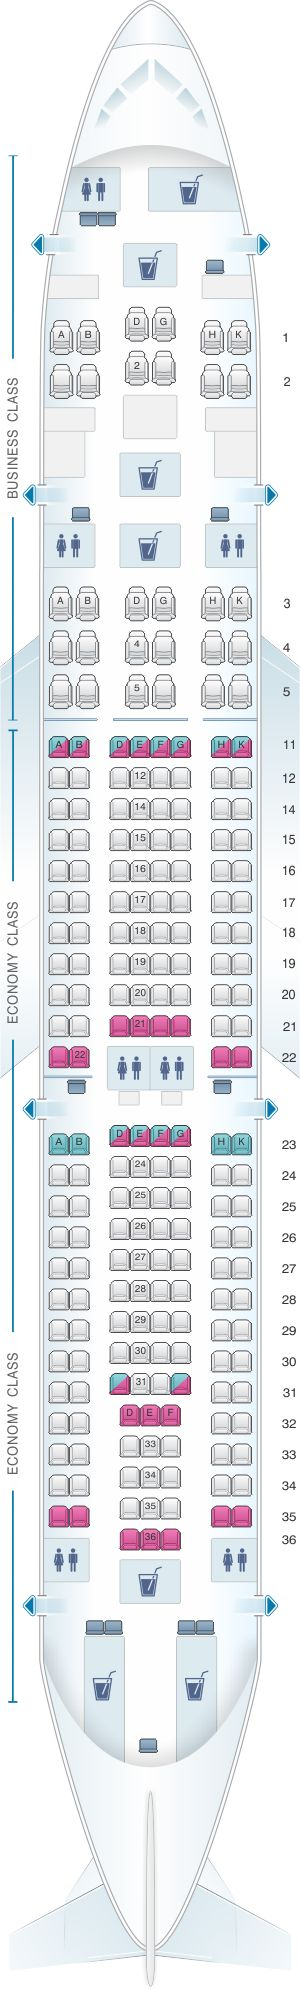 Seat Map Kingfisher Airlines Airbus A330 200